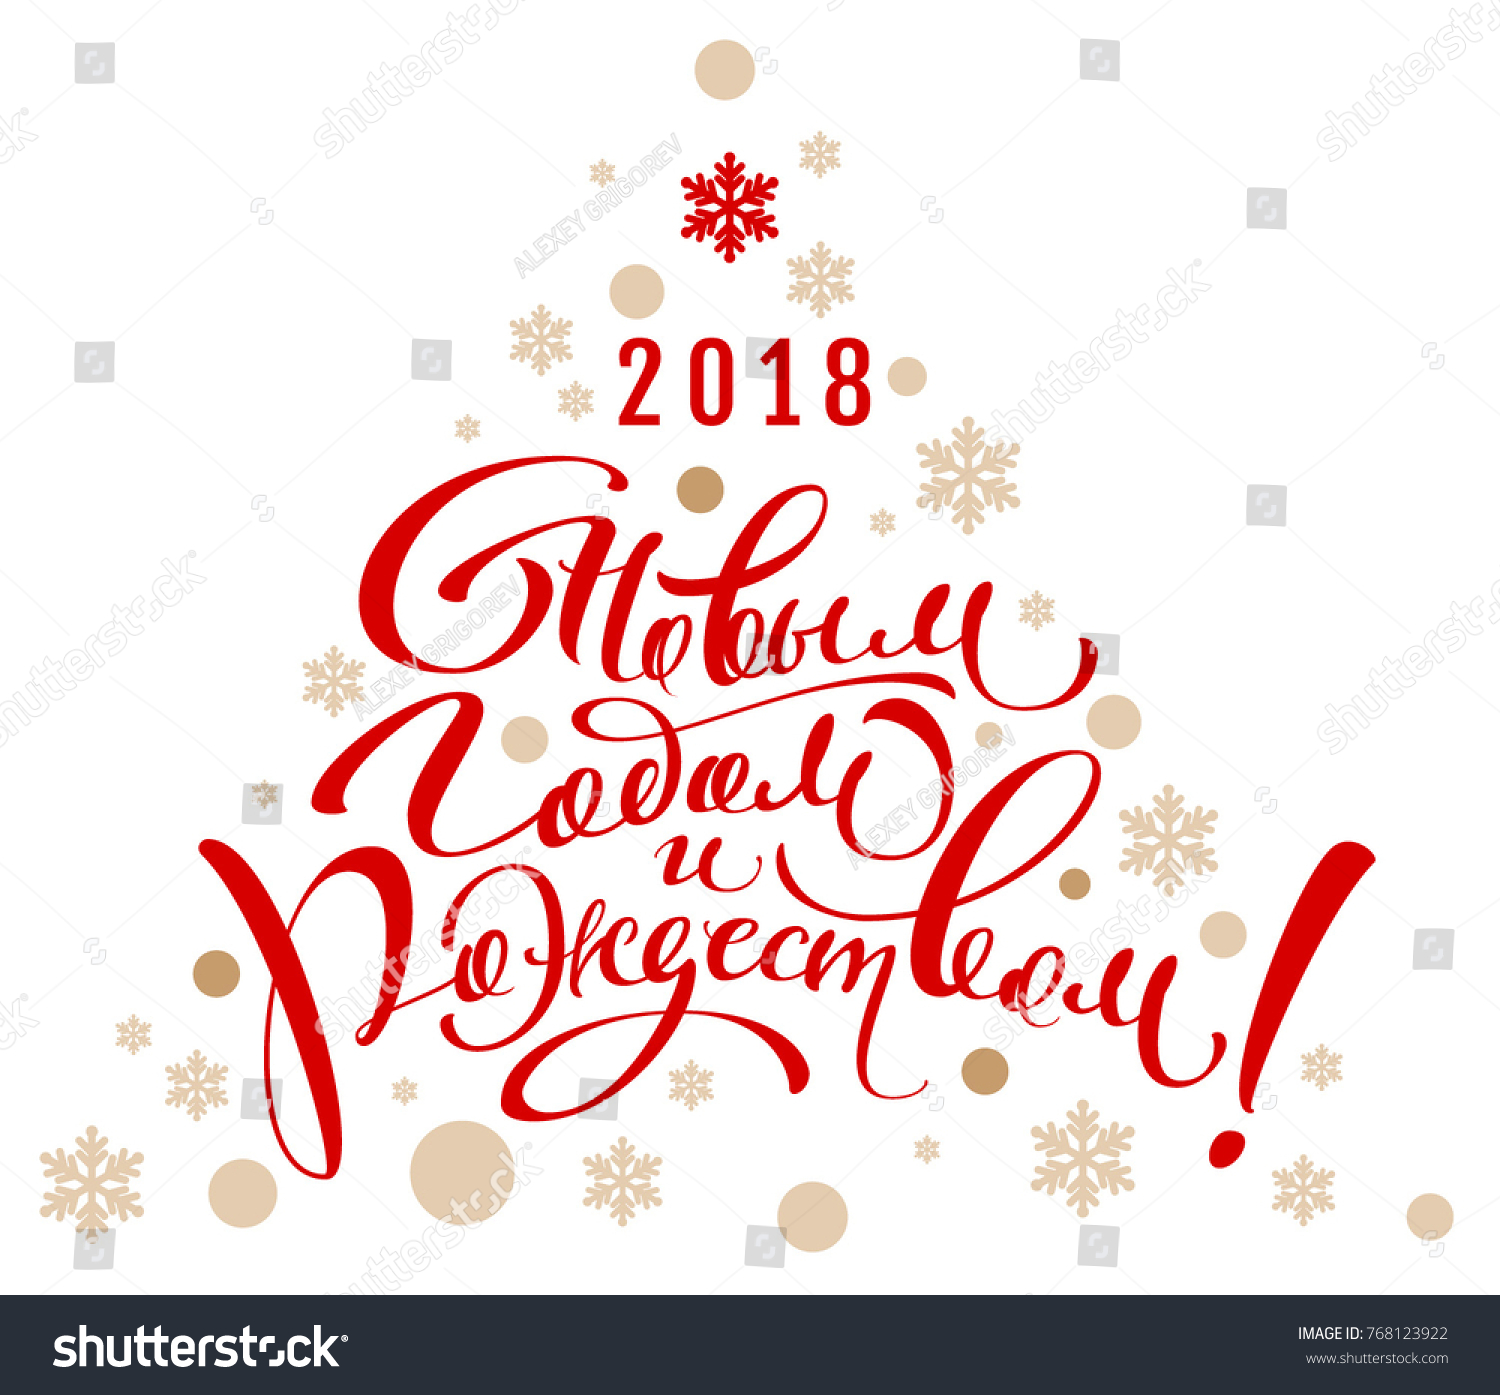 2018 happy new year christmas translation stock vector 768123922 2018 happy new year and christmas translation from russian lettering calligraphy text greeting card m4hsunfo Image collections